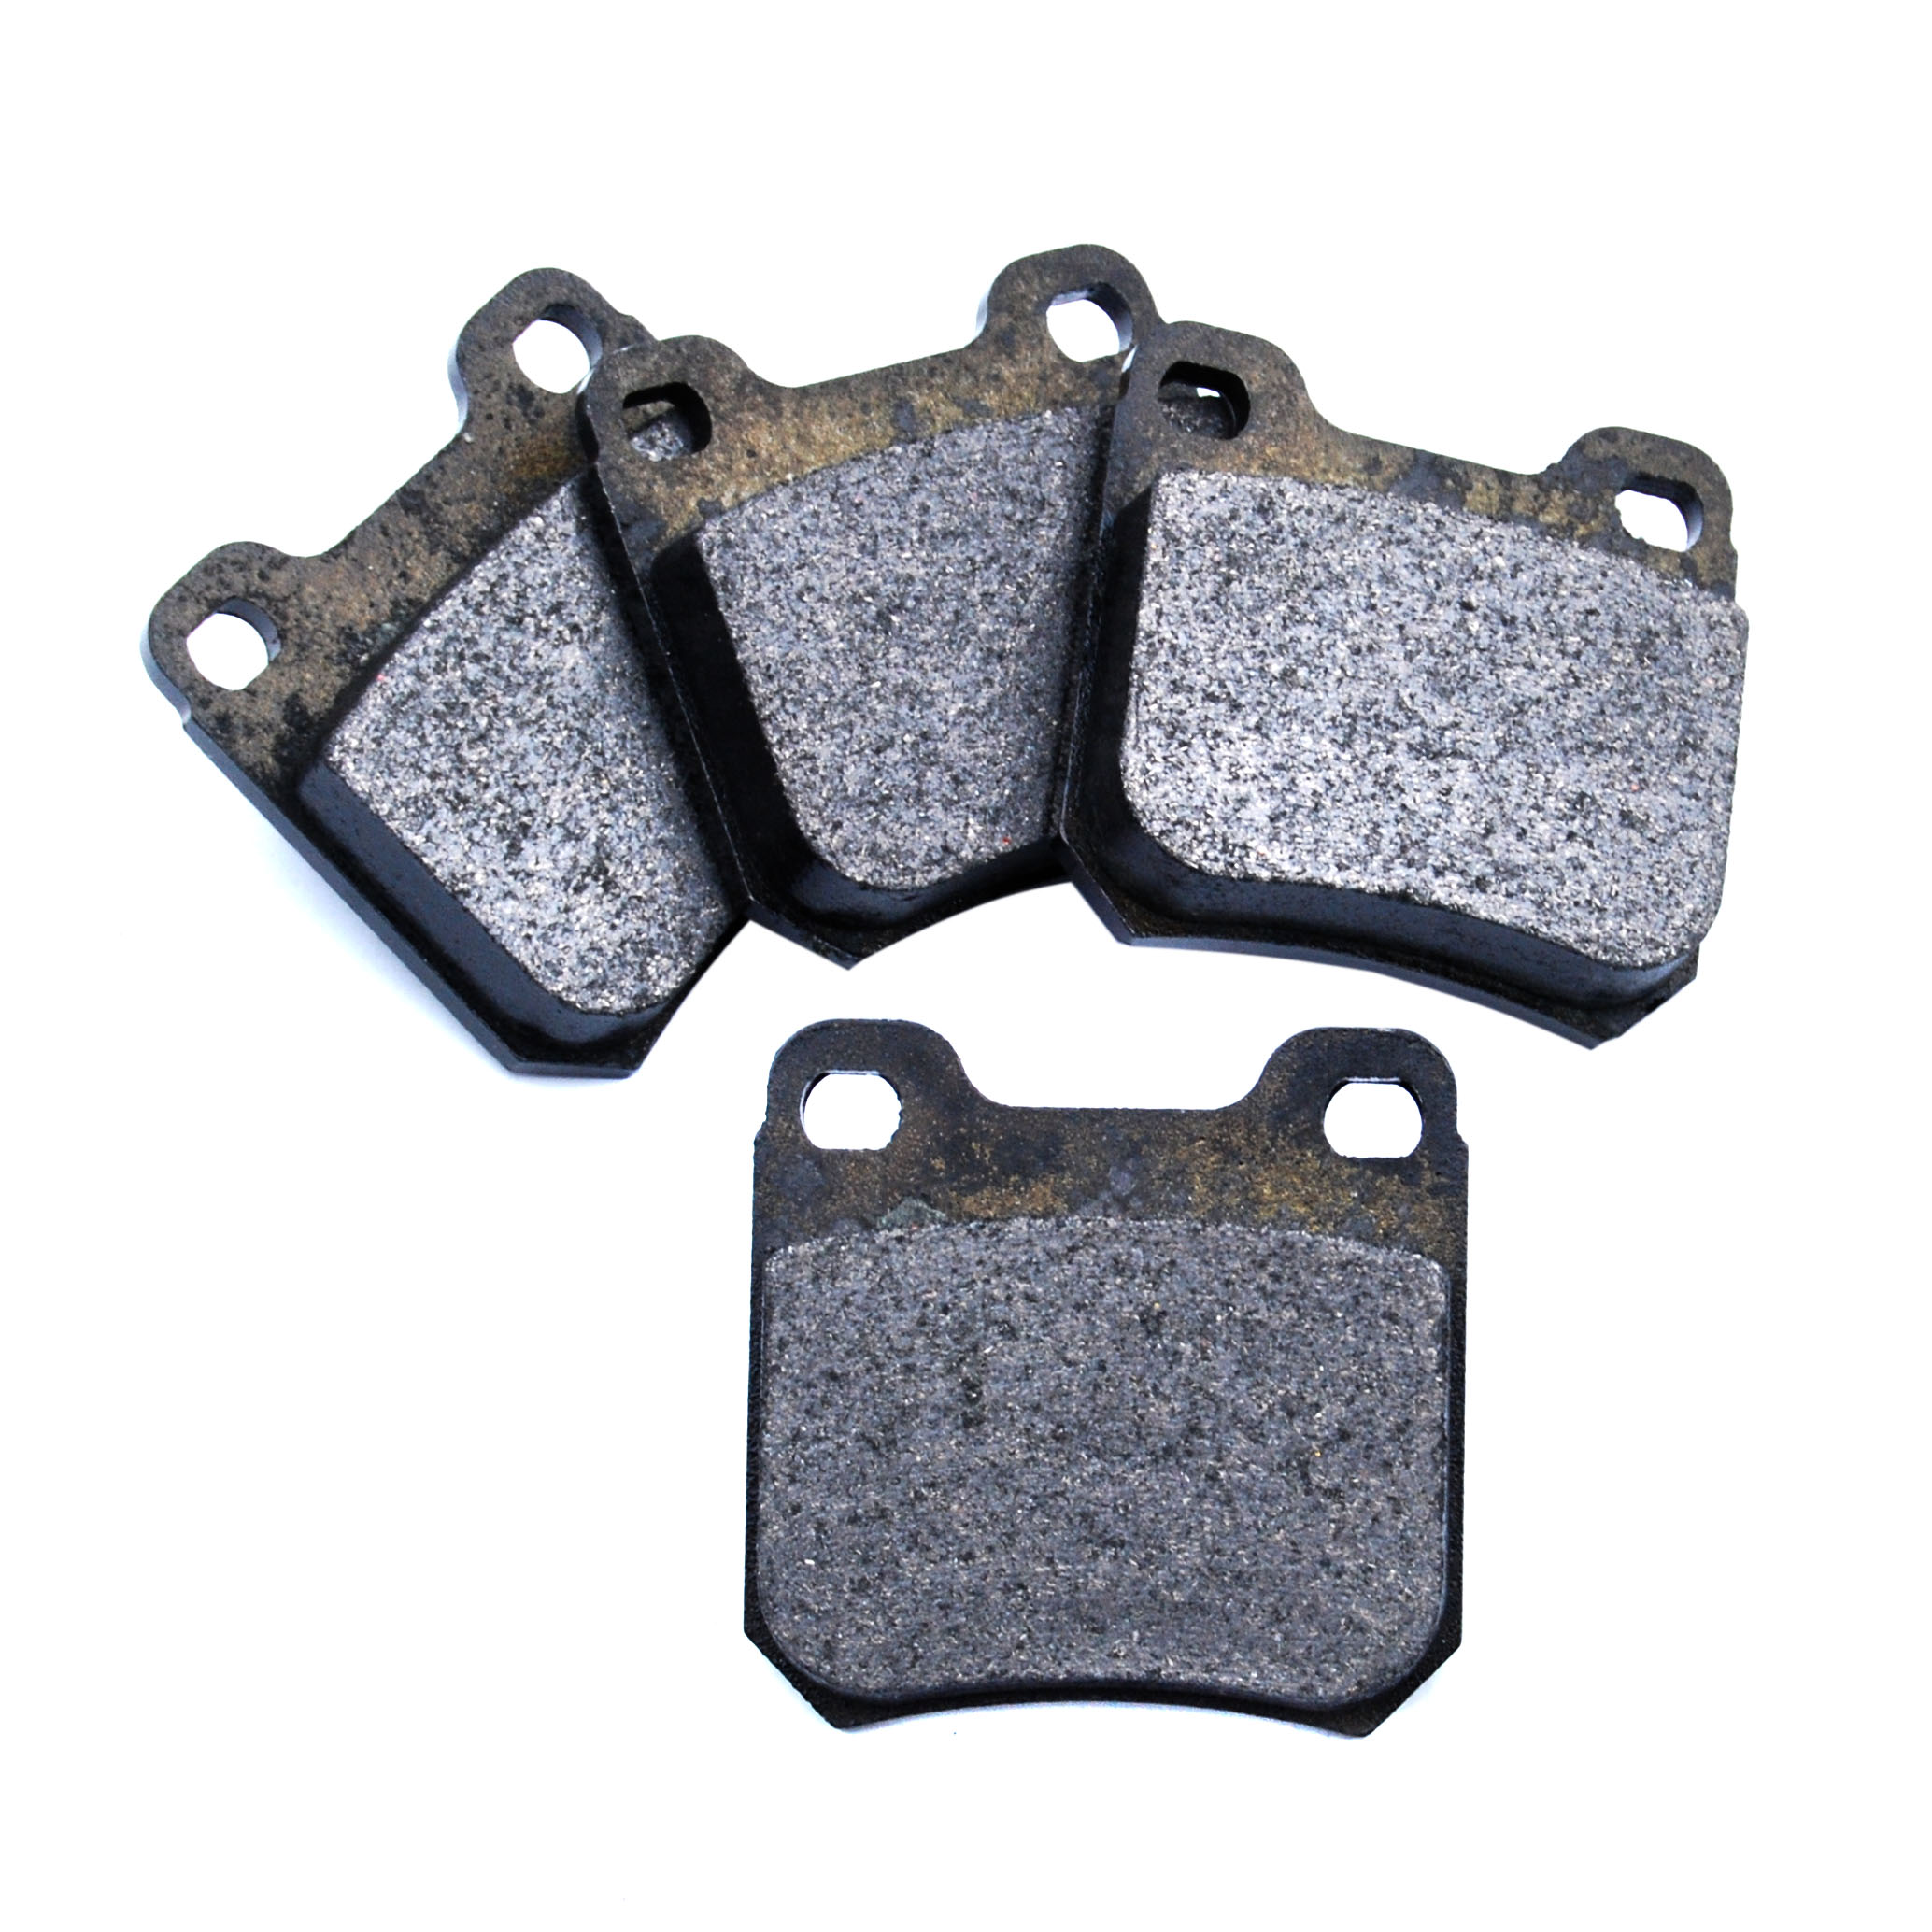 VAUXHALL SAAB OPEL Rear Brake Pads 61.64mm Width No Wear Warning Contact By ATE